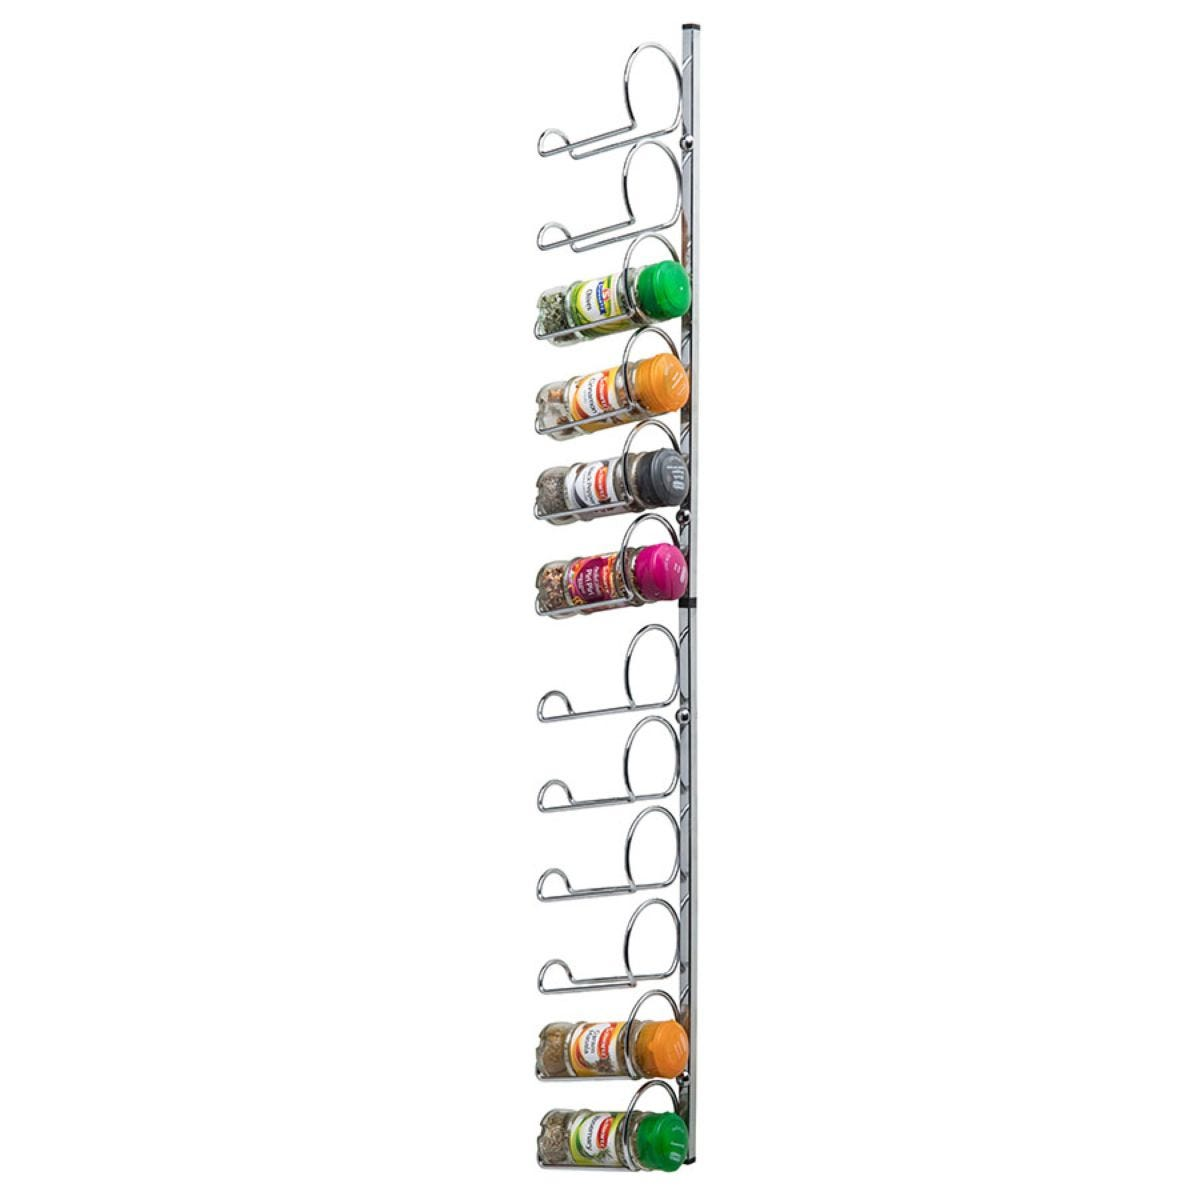 Hahn Pisa 12 Jar Wall / Cupboard Spice Rack - Chrome